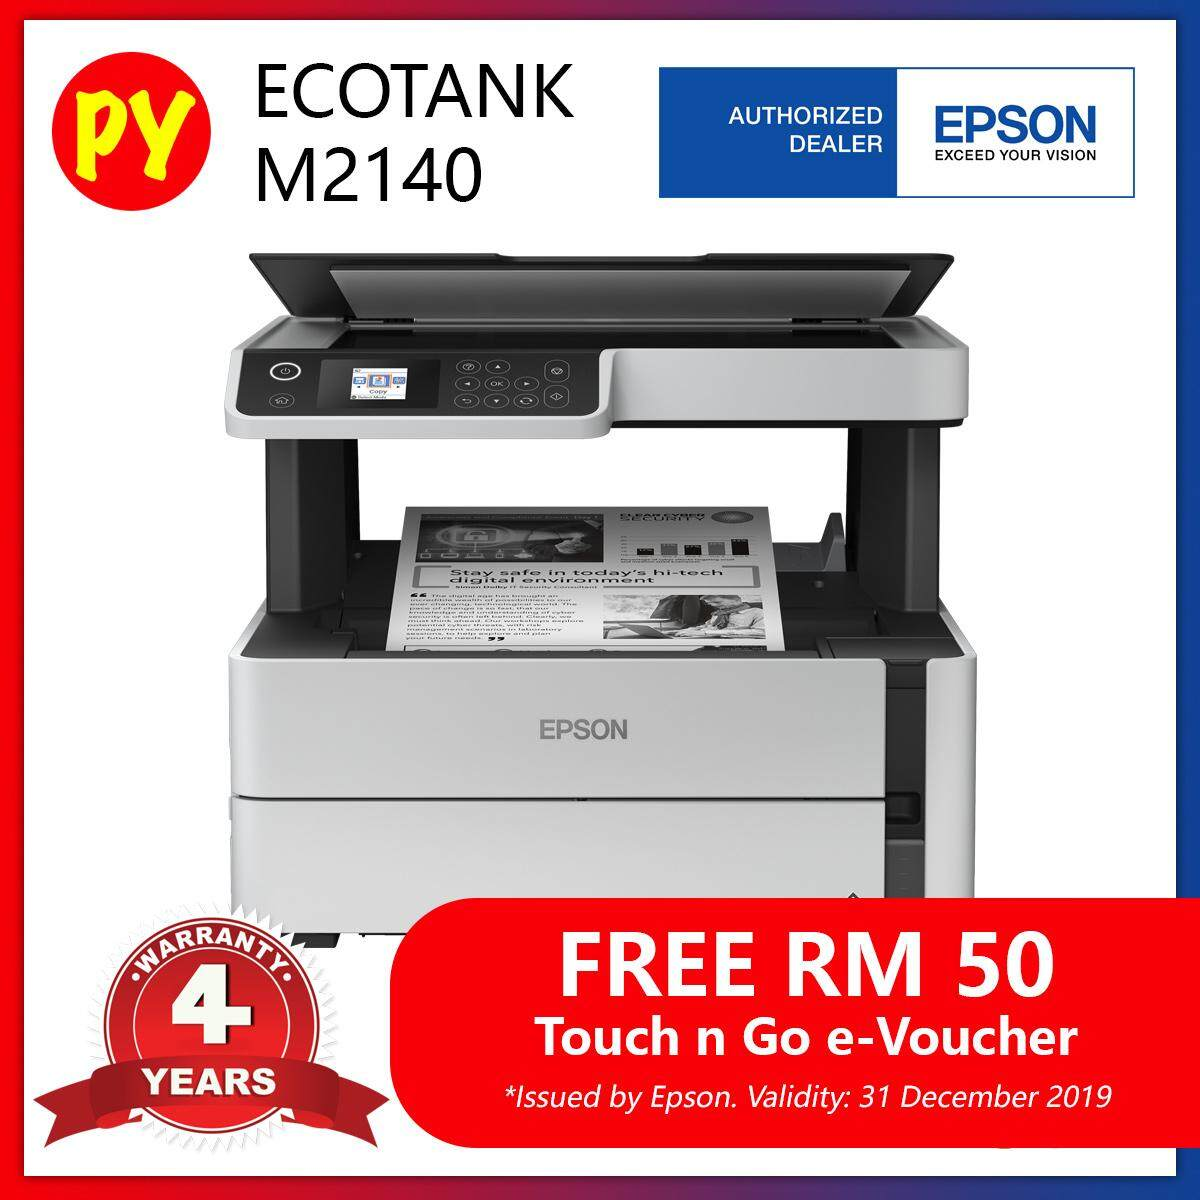 Epson EcoTank Monochrome M2140 All-in-One (Print, Scan. Copy, Duplex, Wifi) Ink Tank Printer - compatible ink Epson 005 + Free RM50 Touch 'n Go E-Voucher